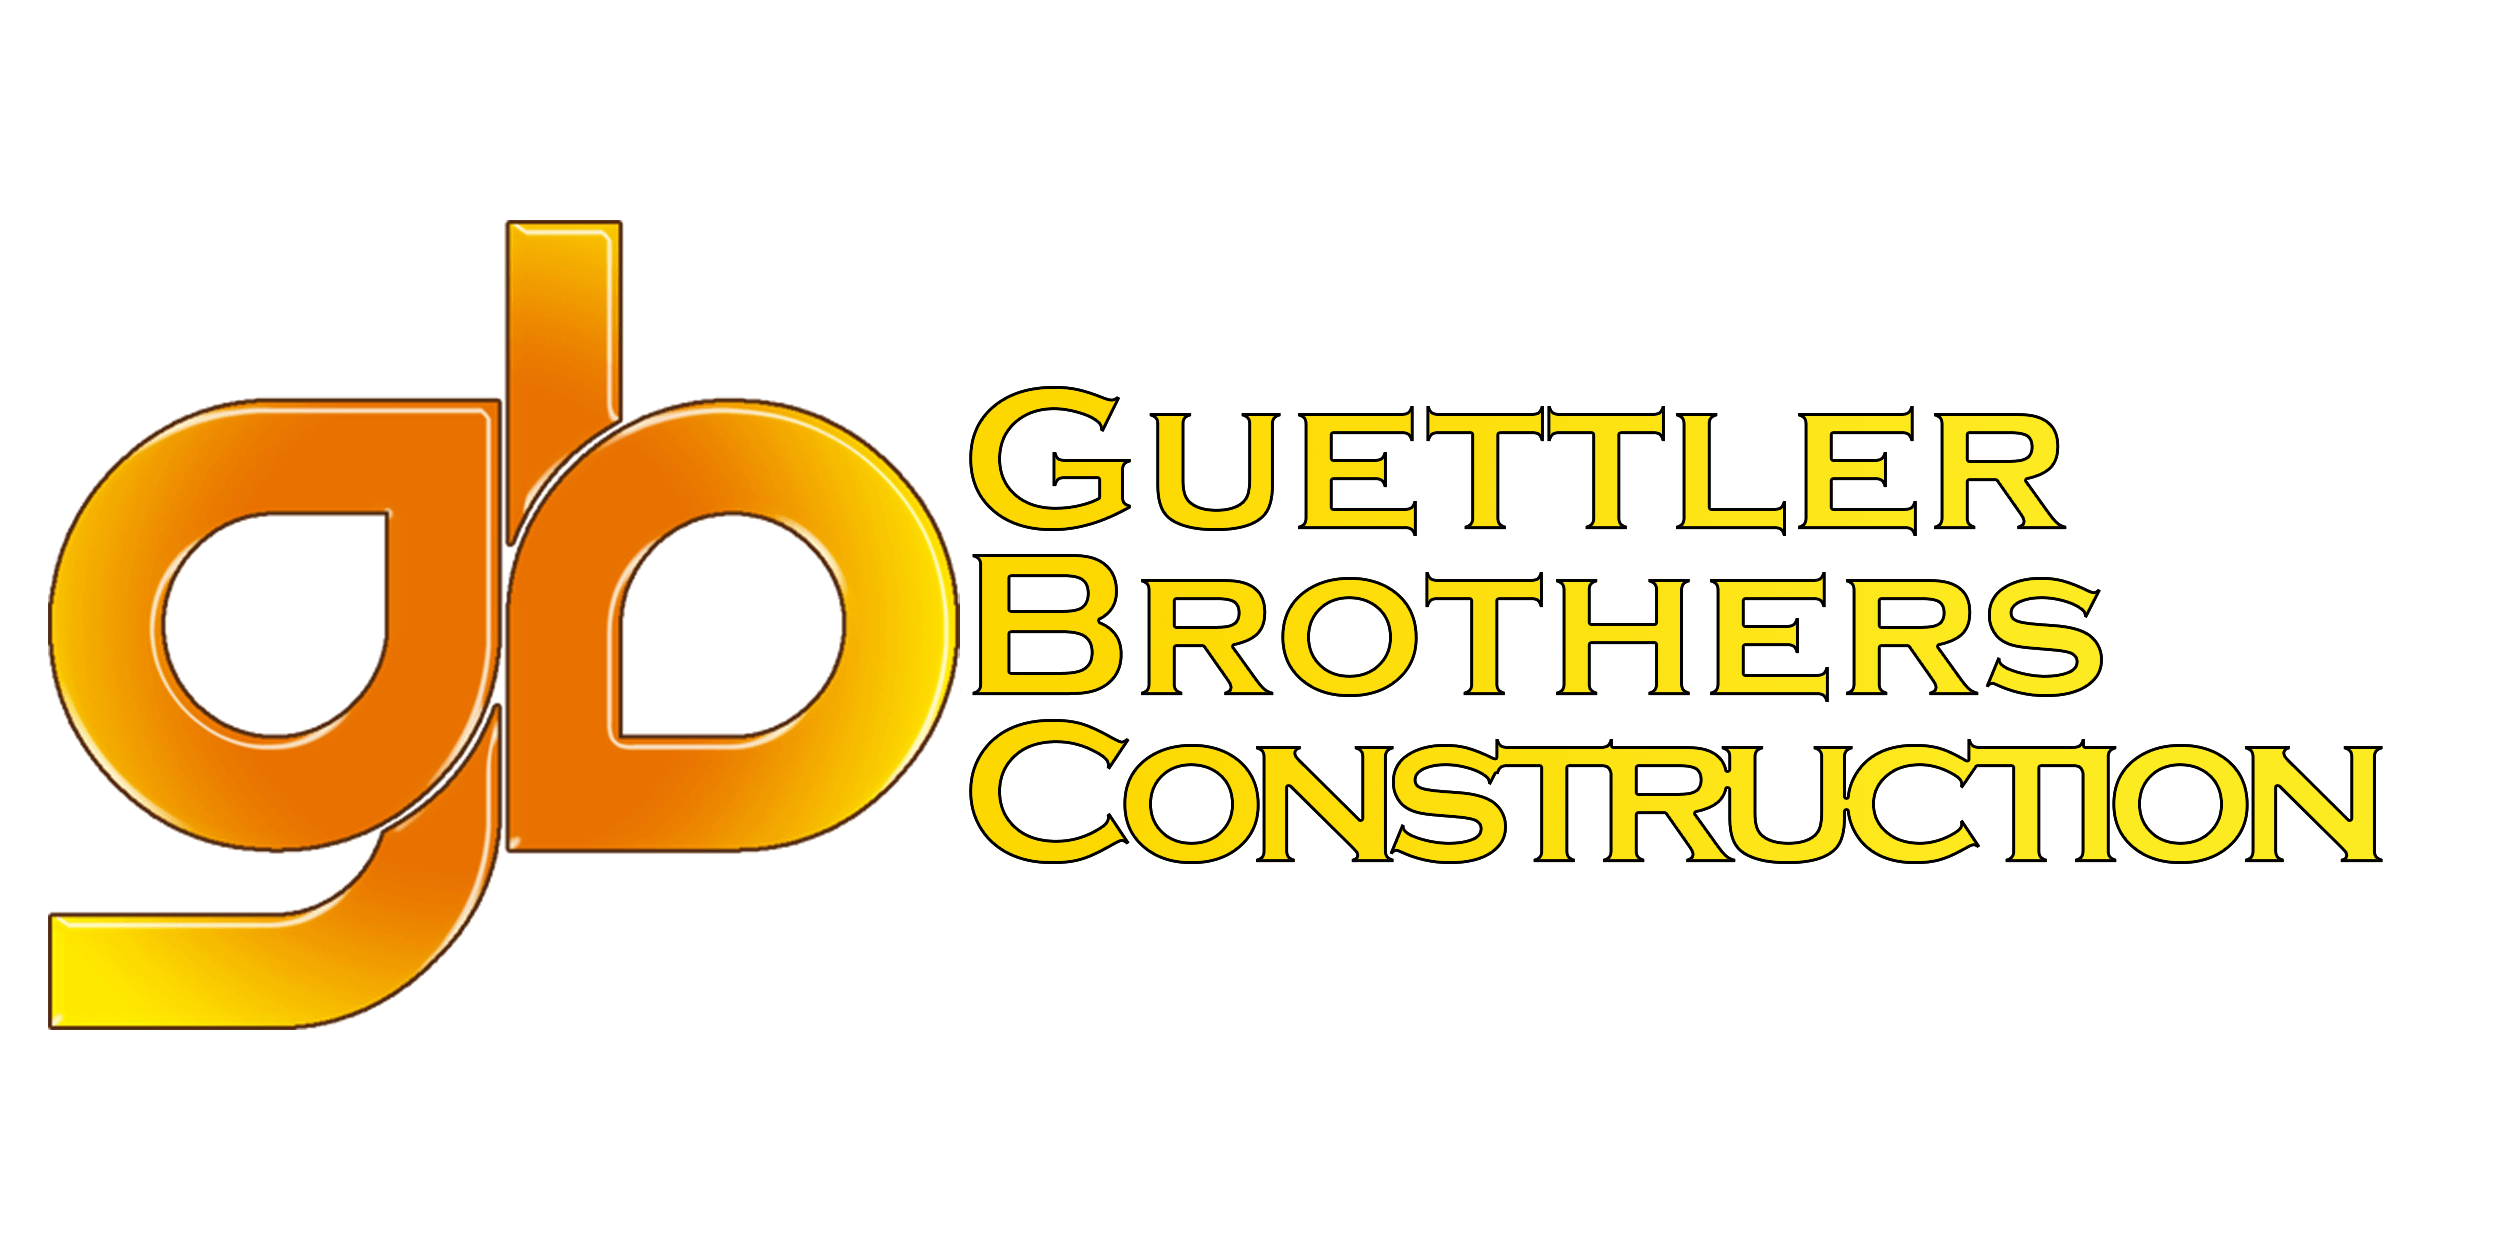 guettler brothers construction - HEAL Sponsor